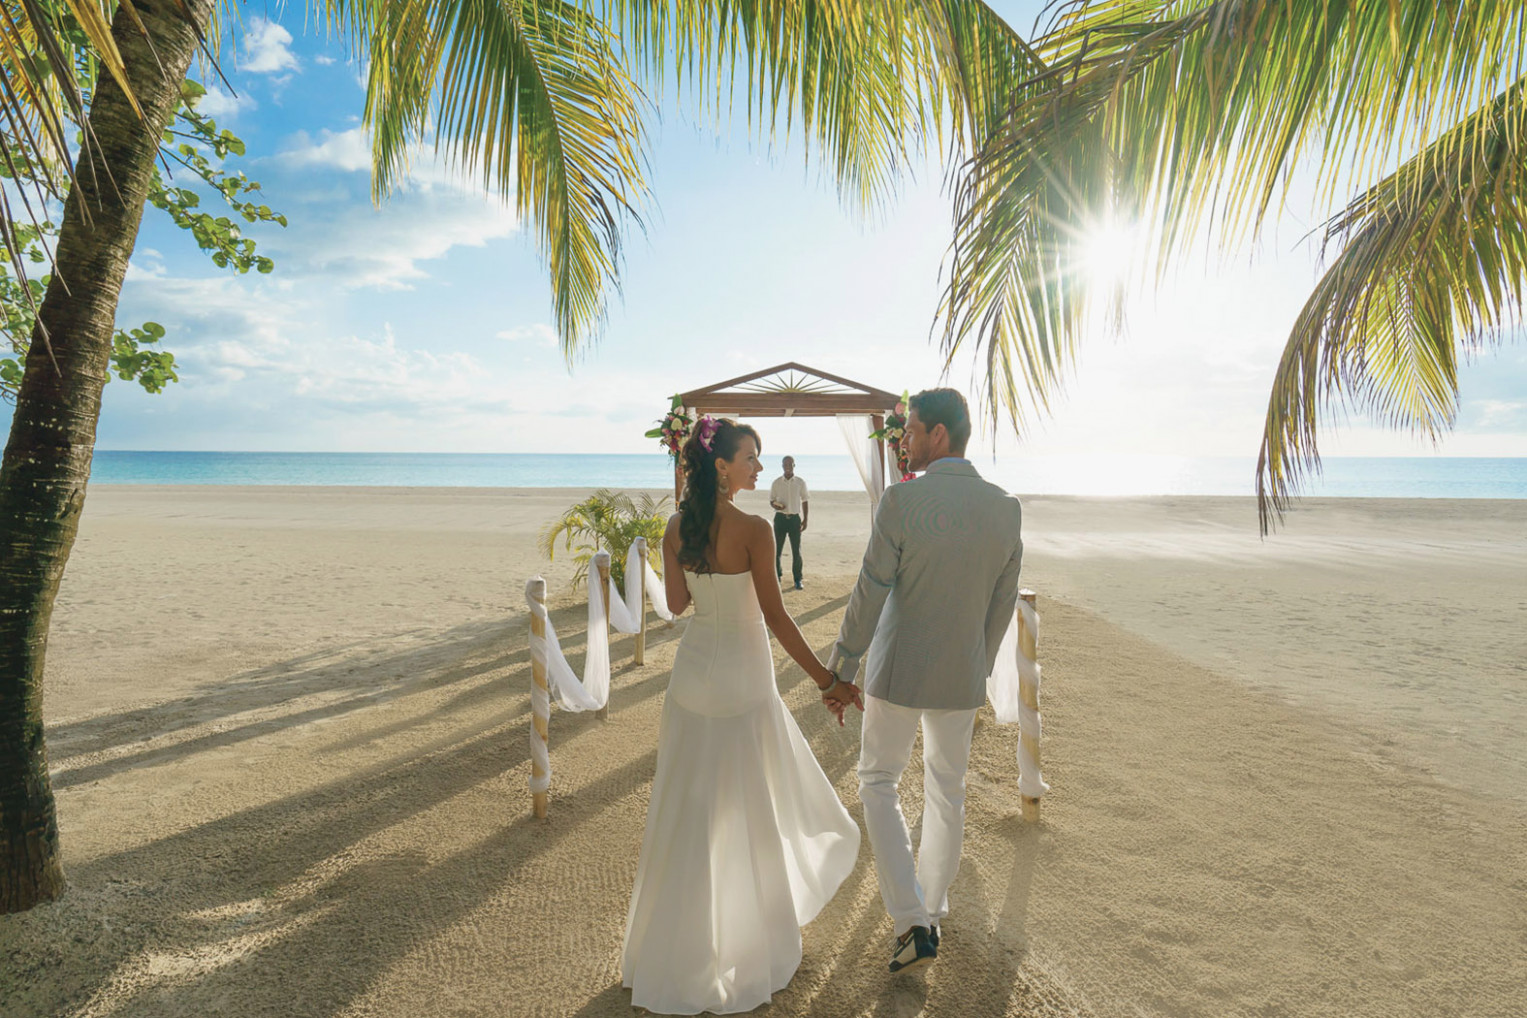 Top tips for writing your own wedding vows